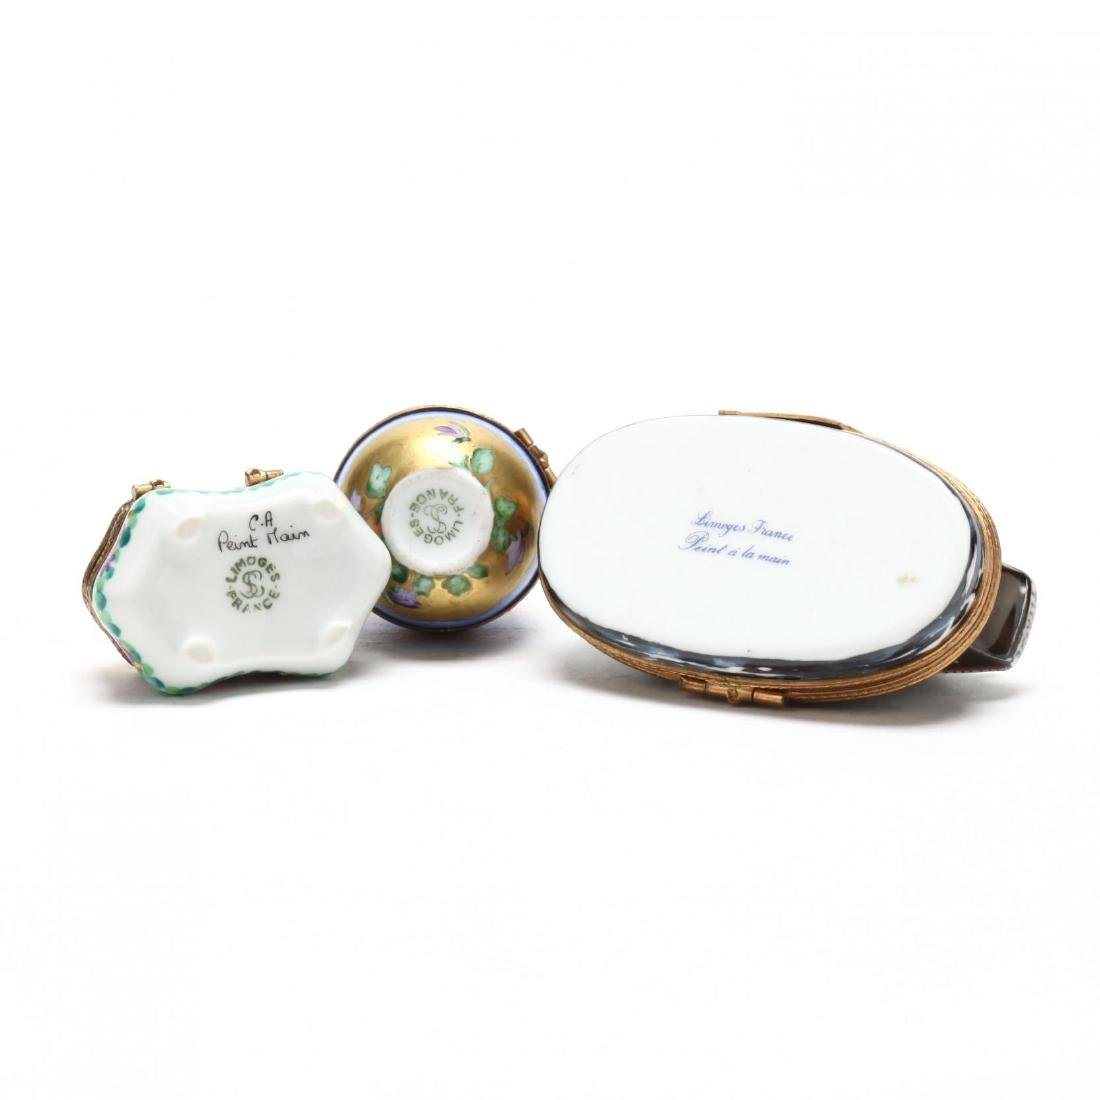 (15) Limoges Painted Porcelain Pill Boxes - 6